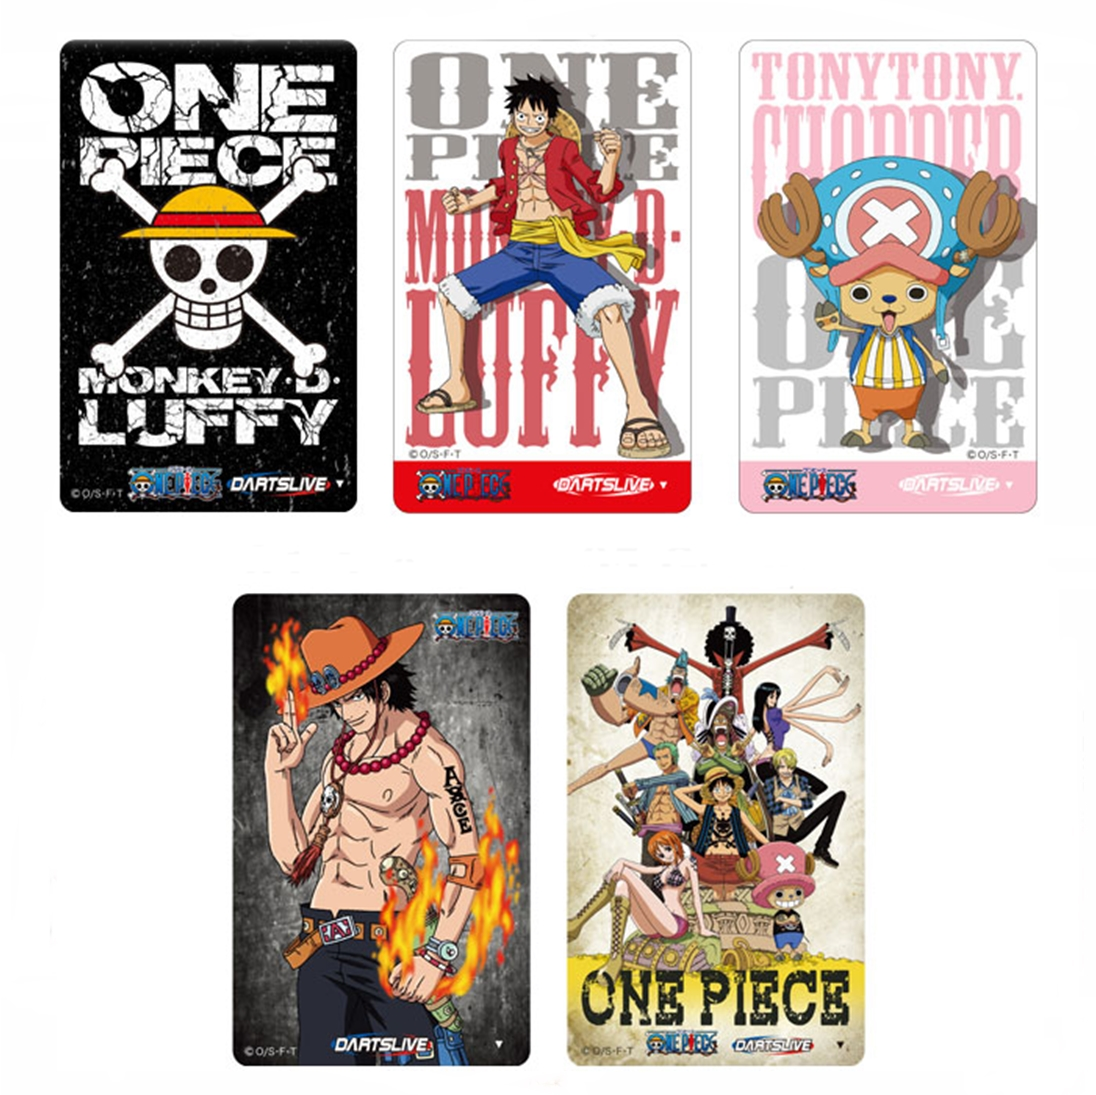 Dartslive2-Card-One-Piece-series-one-set.jpg